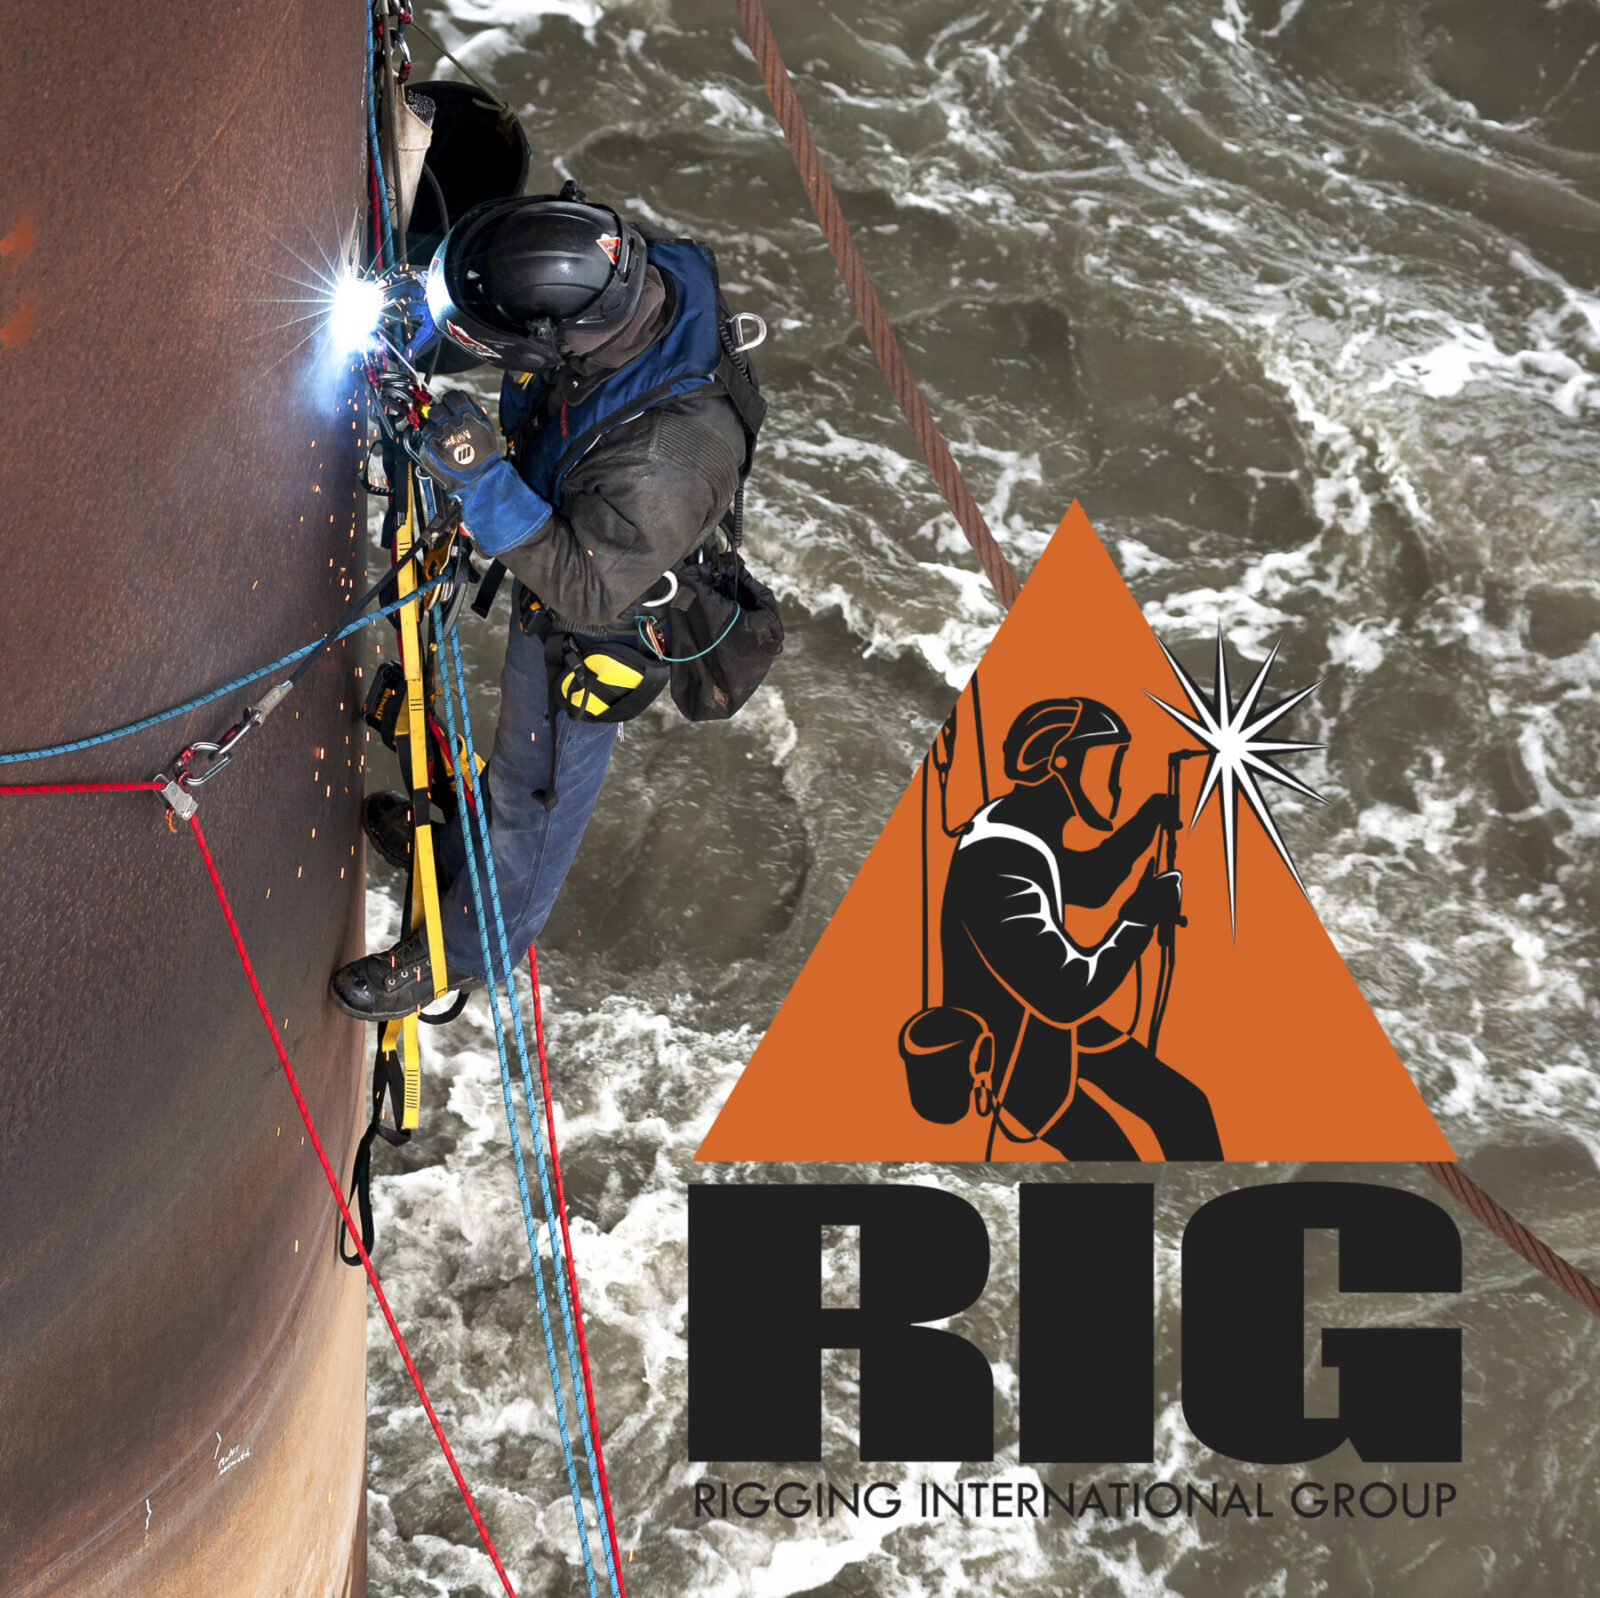 Petzl Technical Partner - Rigging International Group